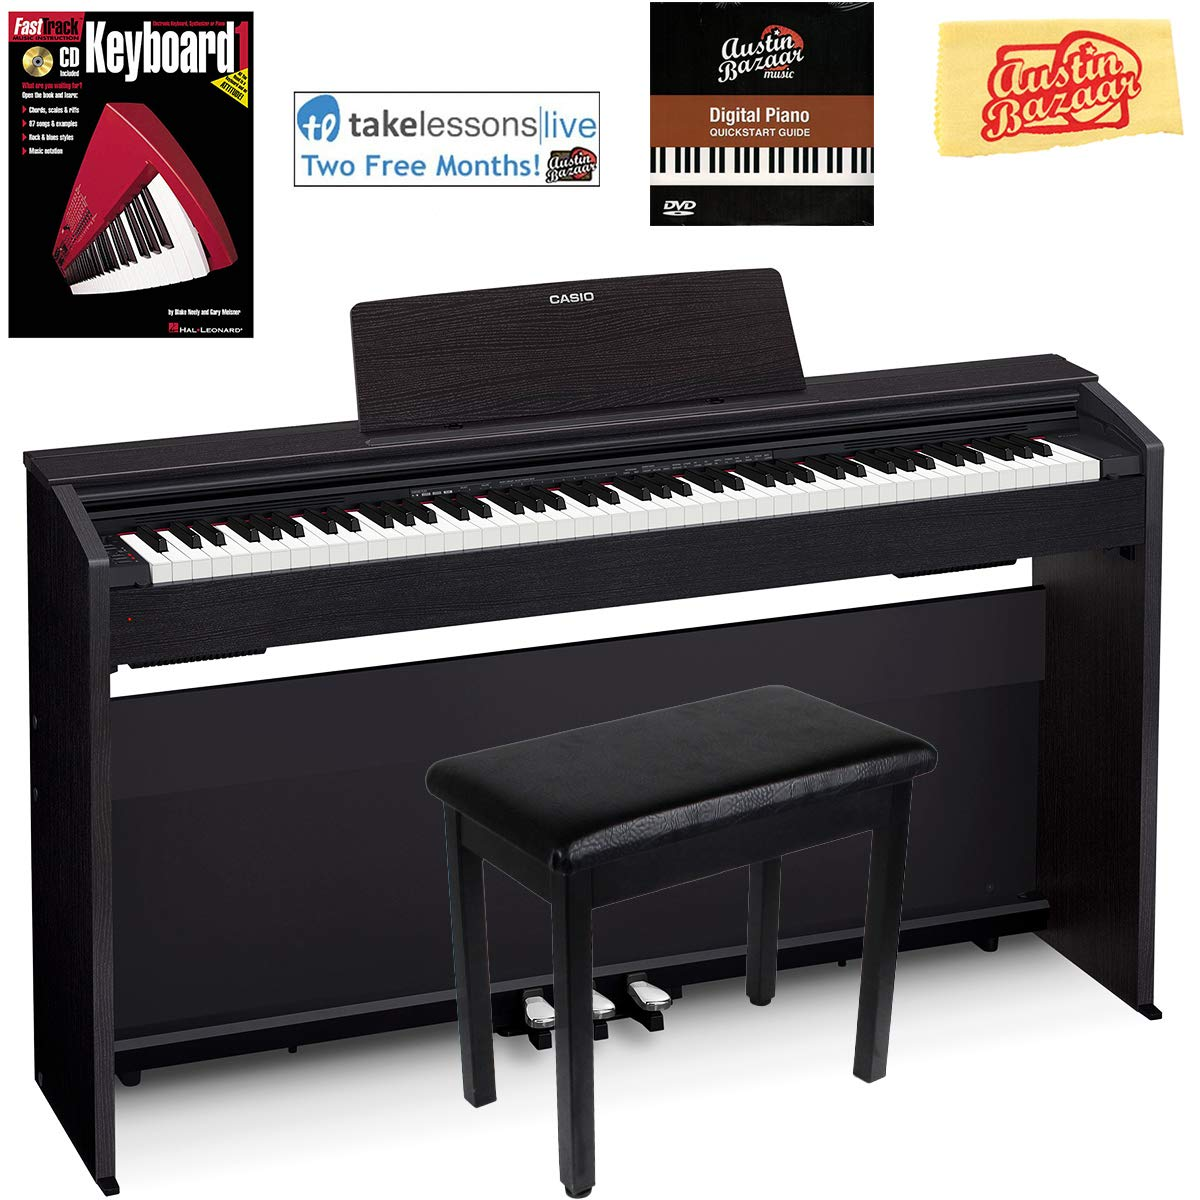 Casio Privia PX-870 Digital Piano - Black Bundle with Furniture Bench, Instructional Book, Online Lessons, Austin Bazaar Instructional DVD, and Polishing Cloth by Casio